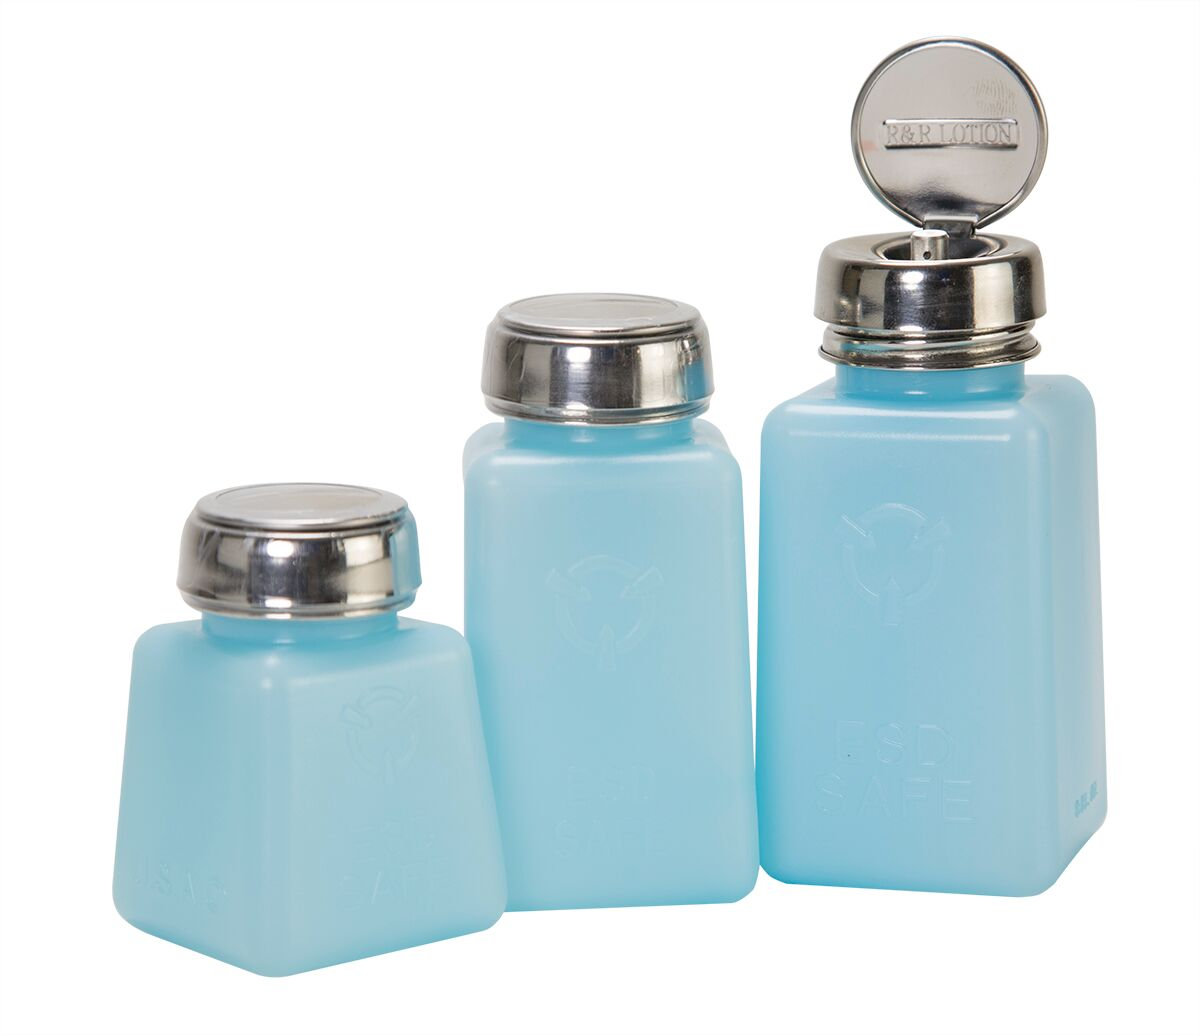 Esd Safe Solvent Dispensers Esd Products